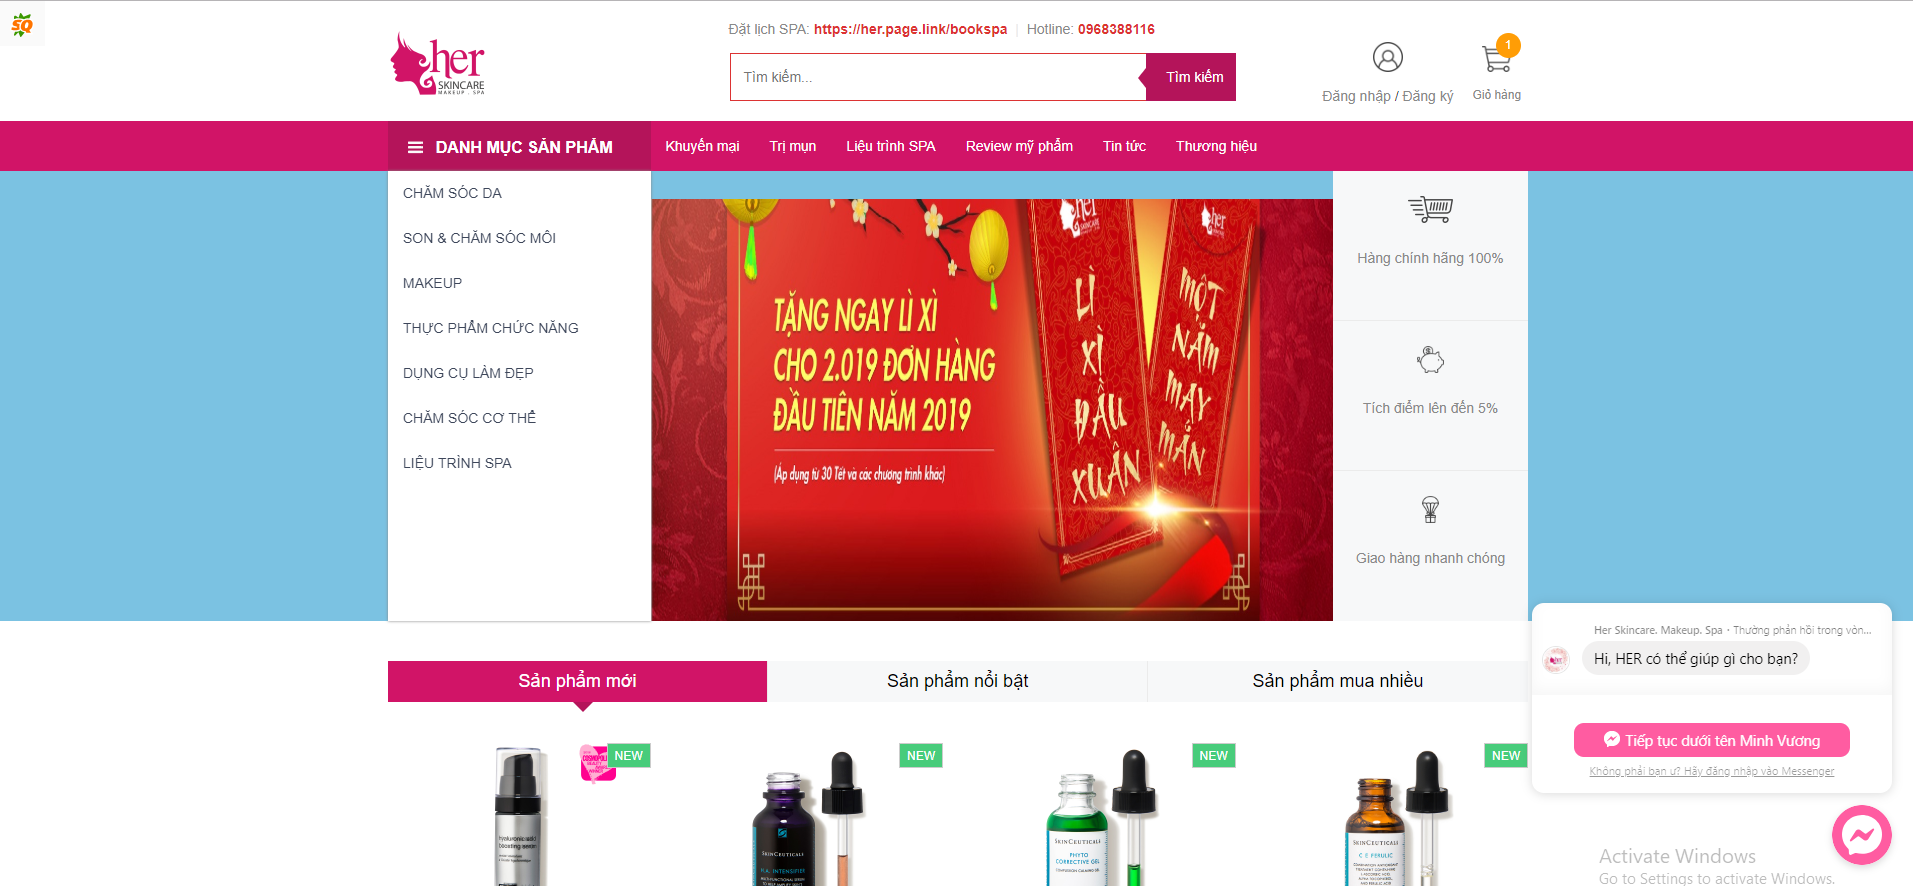 giao diện trang chủ herskincare.vn